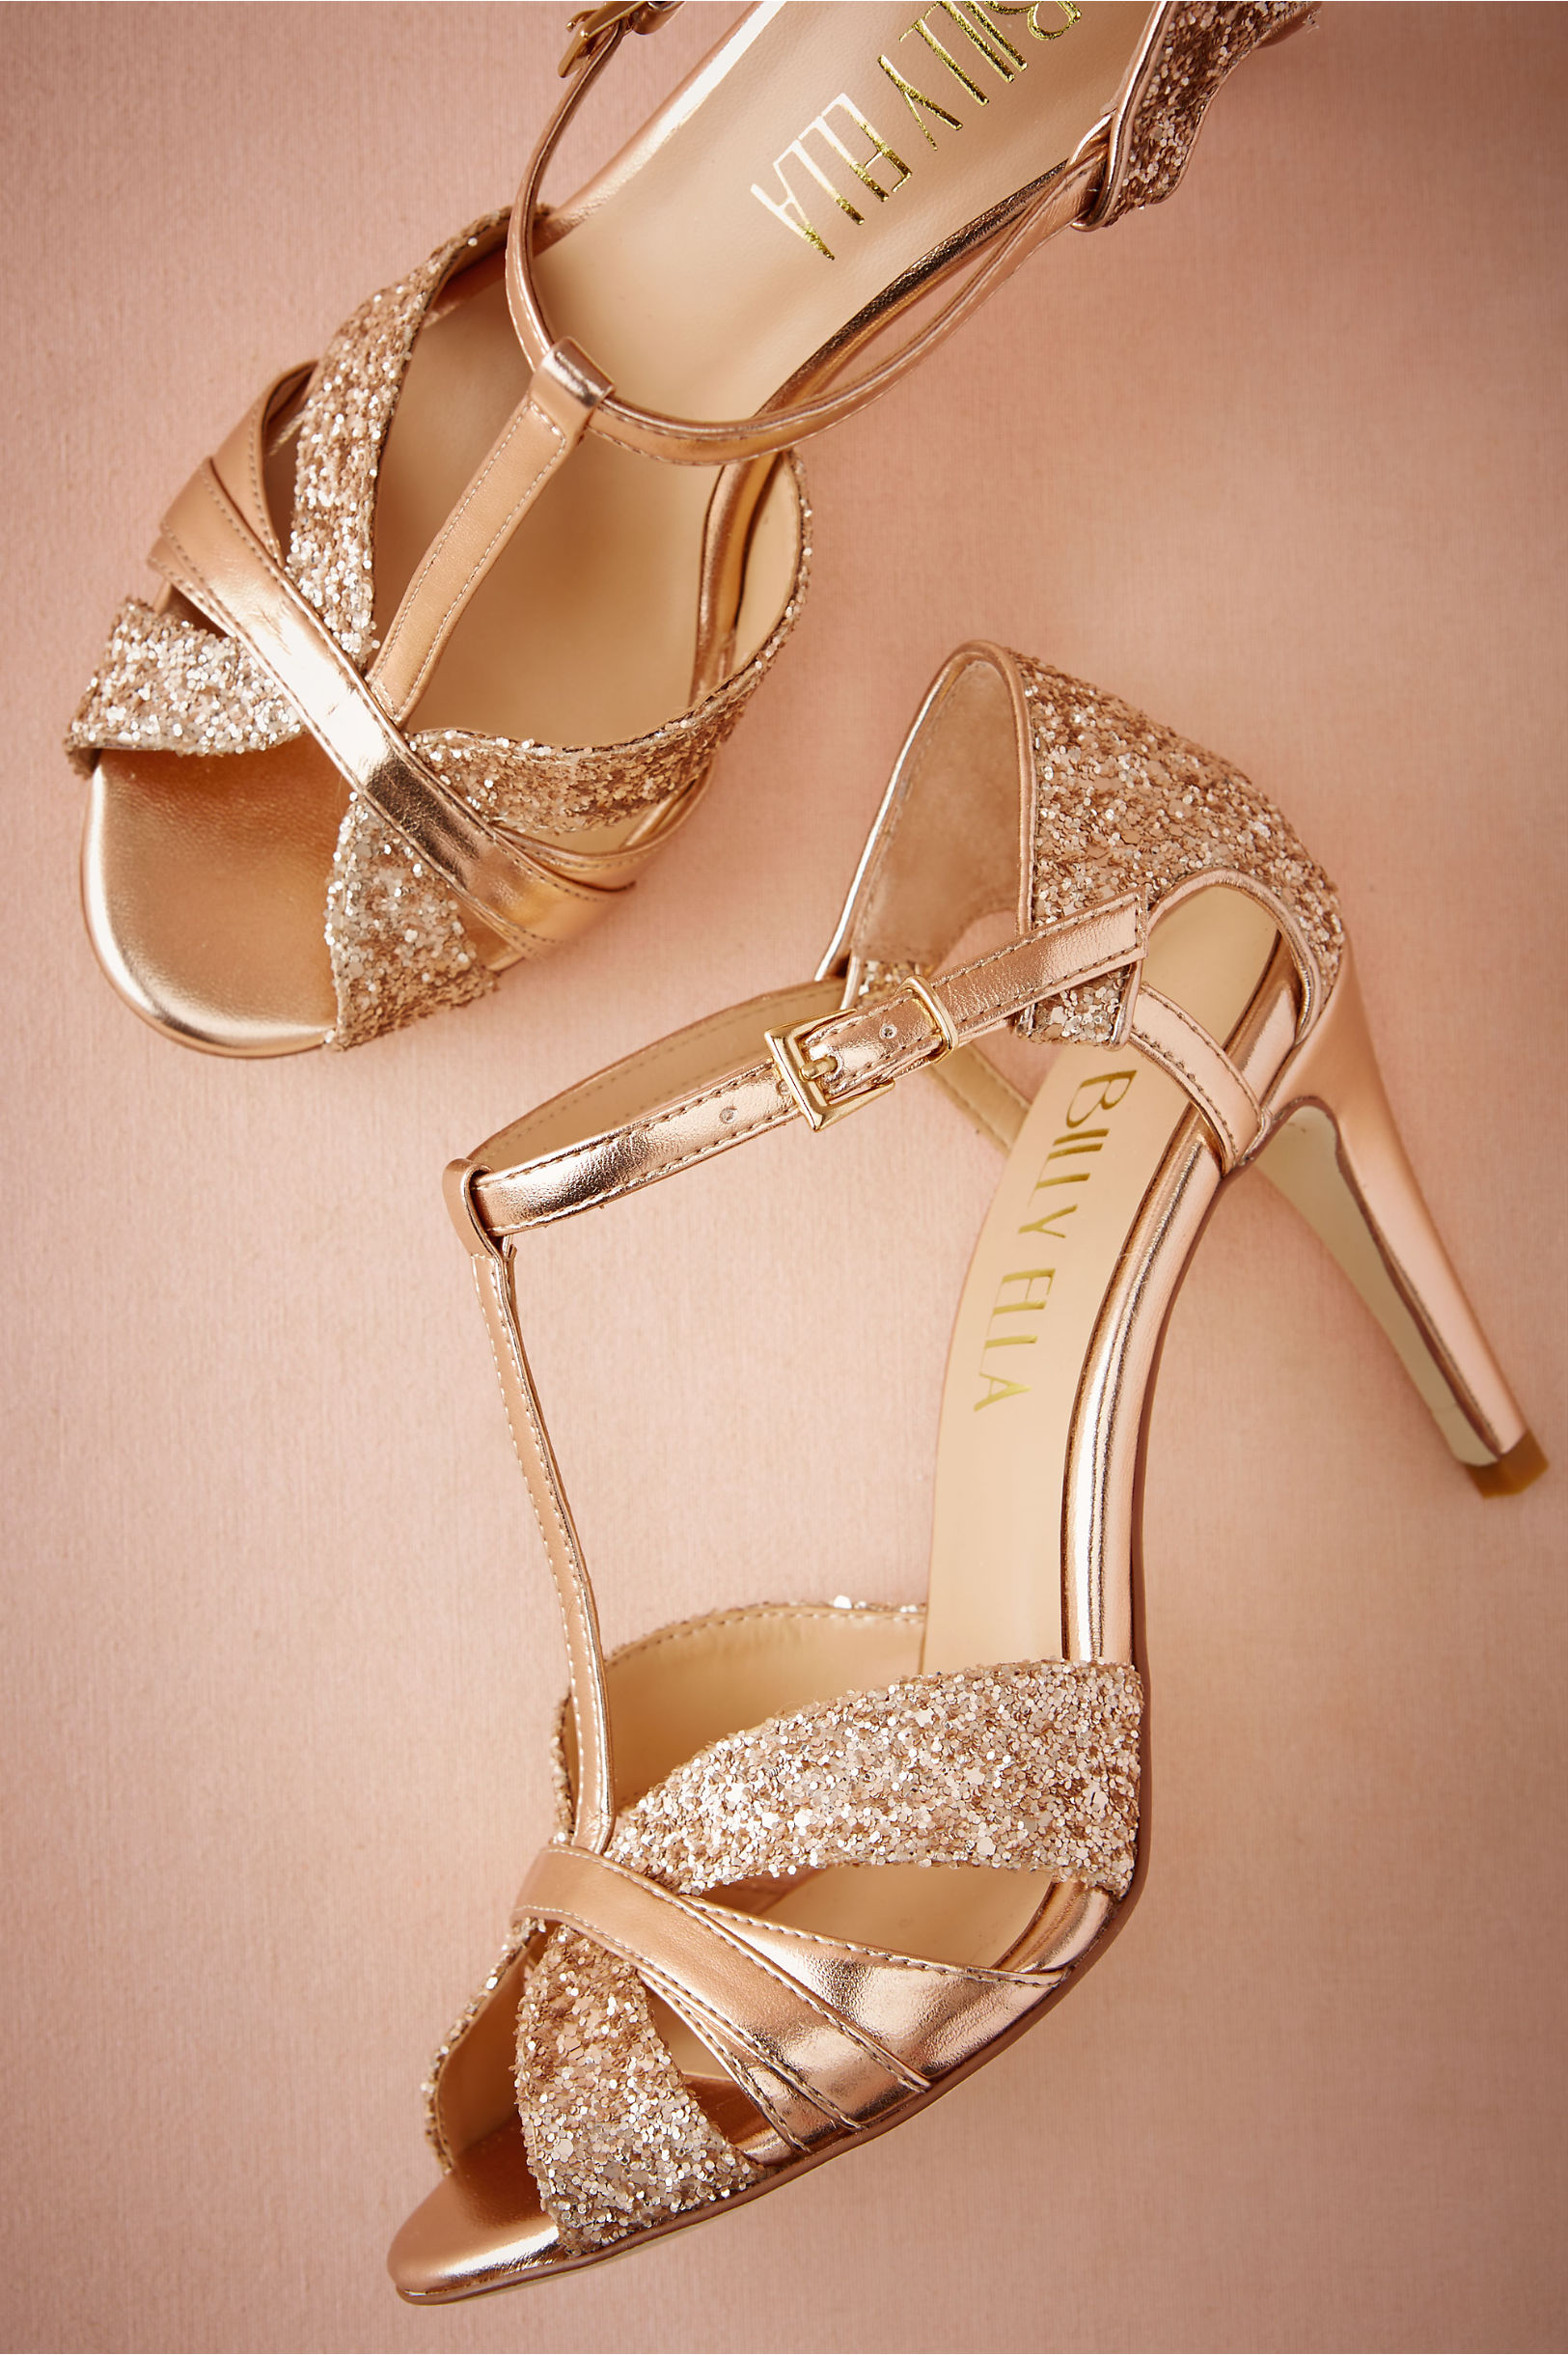 Lucia t strap heels rose gold in bride bhldn rose gold lucia t strap heels bhldn junglespirit Gallery